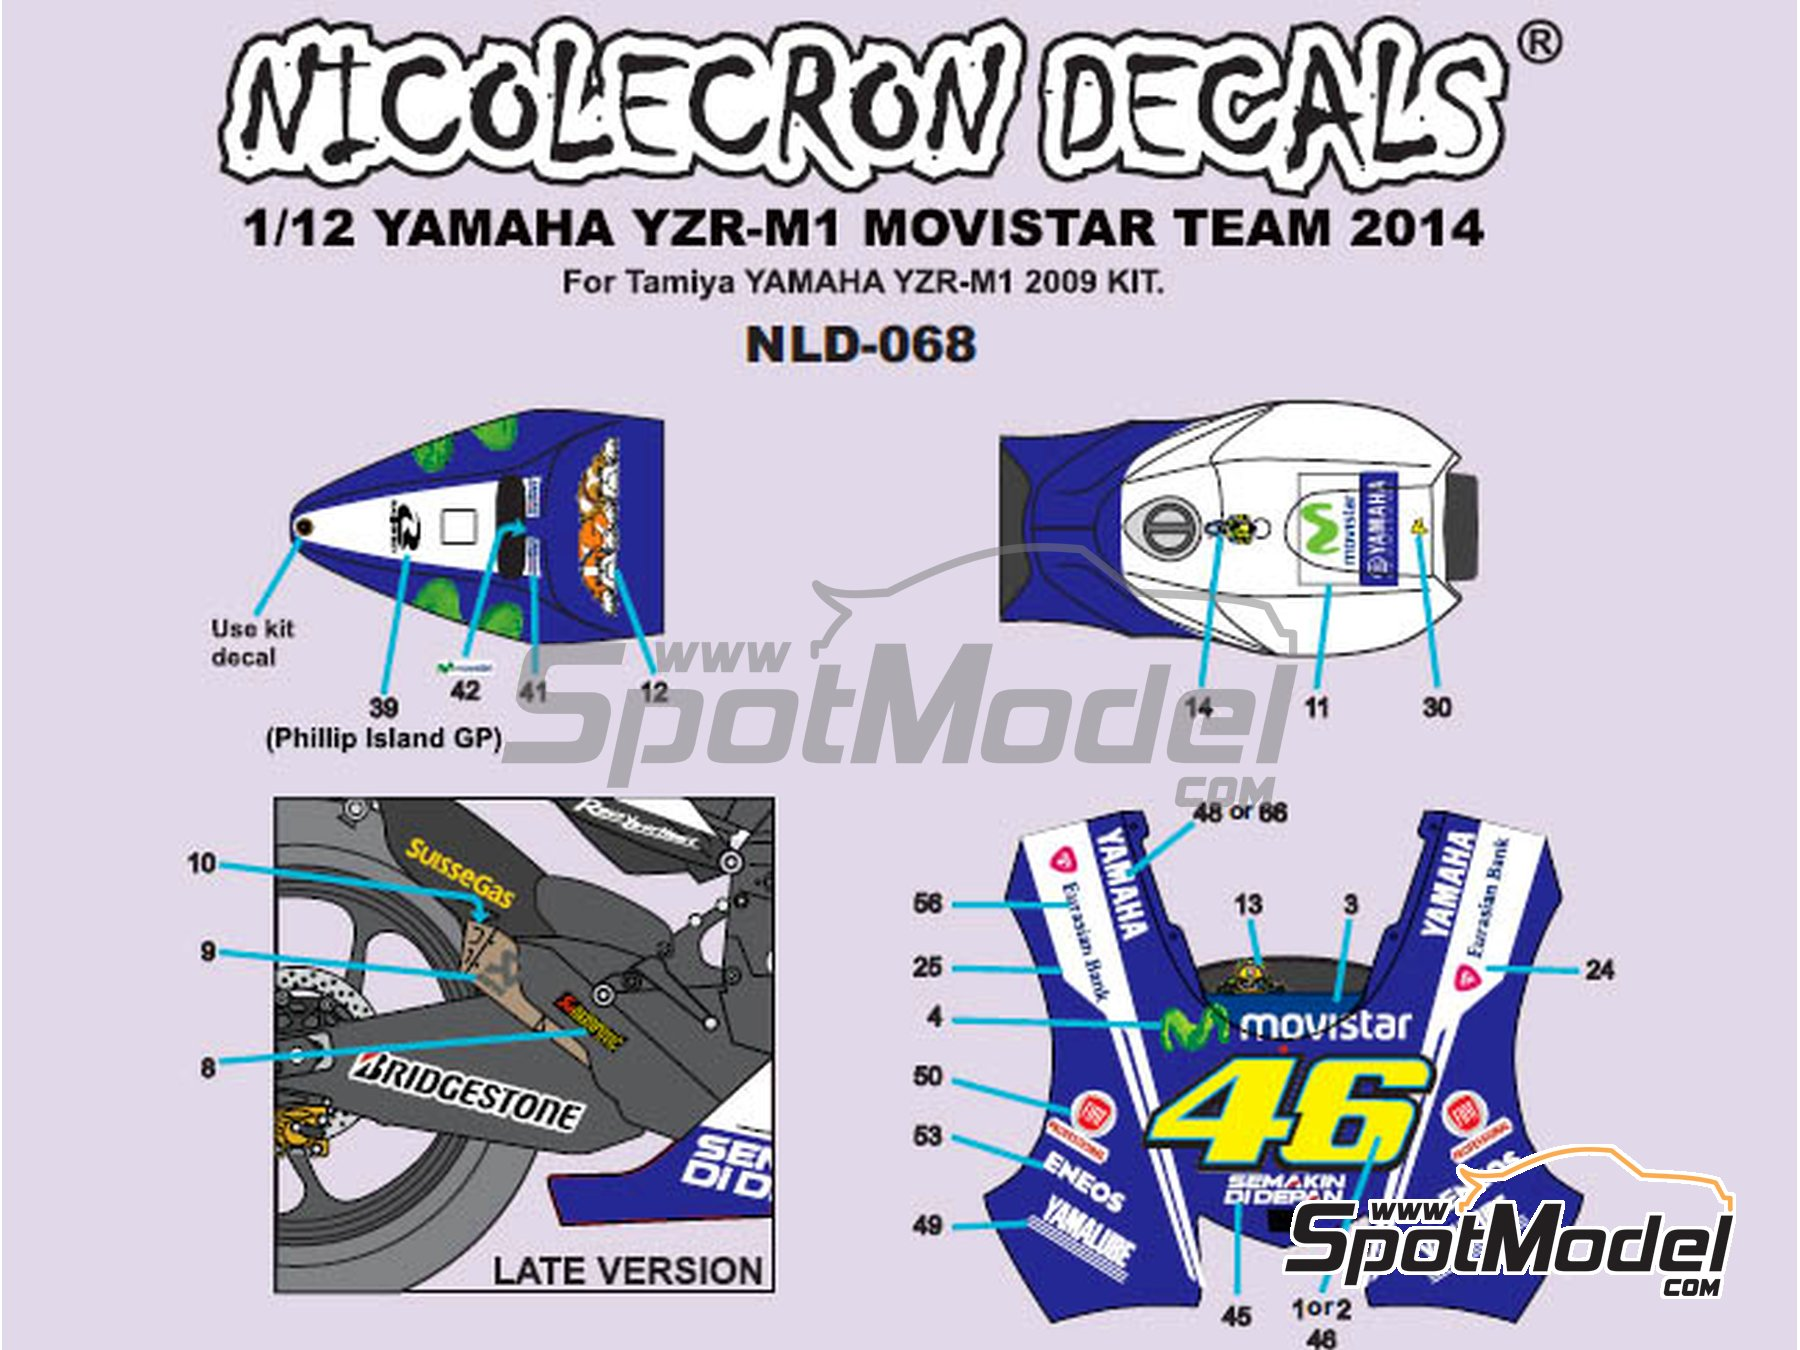 Image 1: Yamaha YZR-M1 Movistar Team - Motorcycle World Championship 2014 | Marking / livery in 1/12 scale manufactured by Nicolecron Decals (ref. NLD-068)